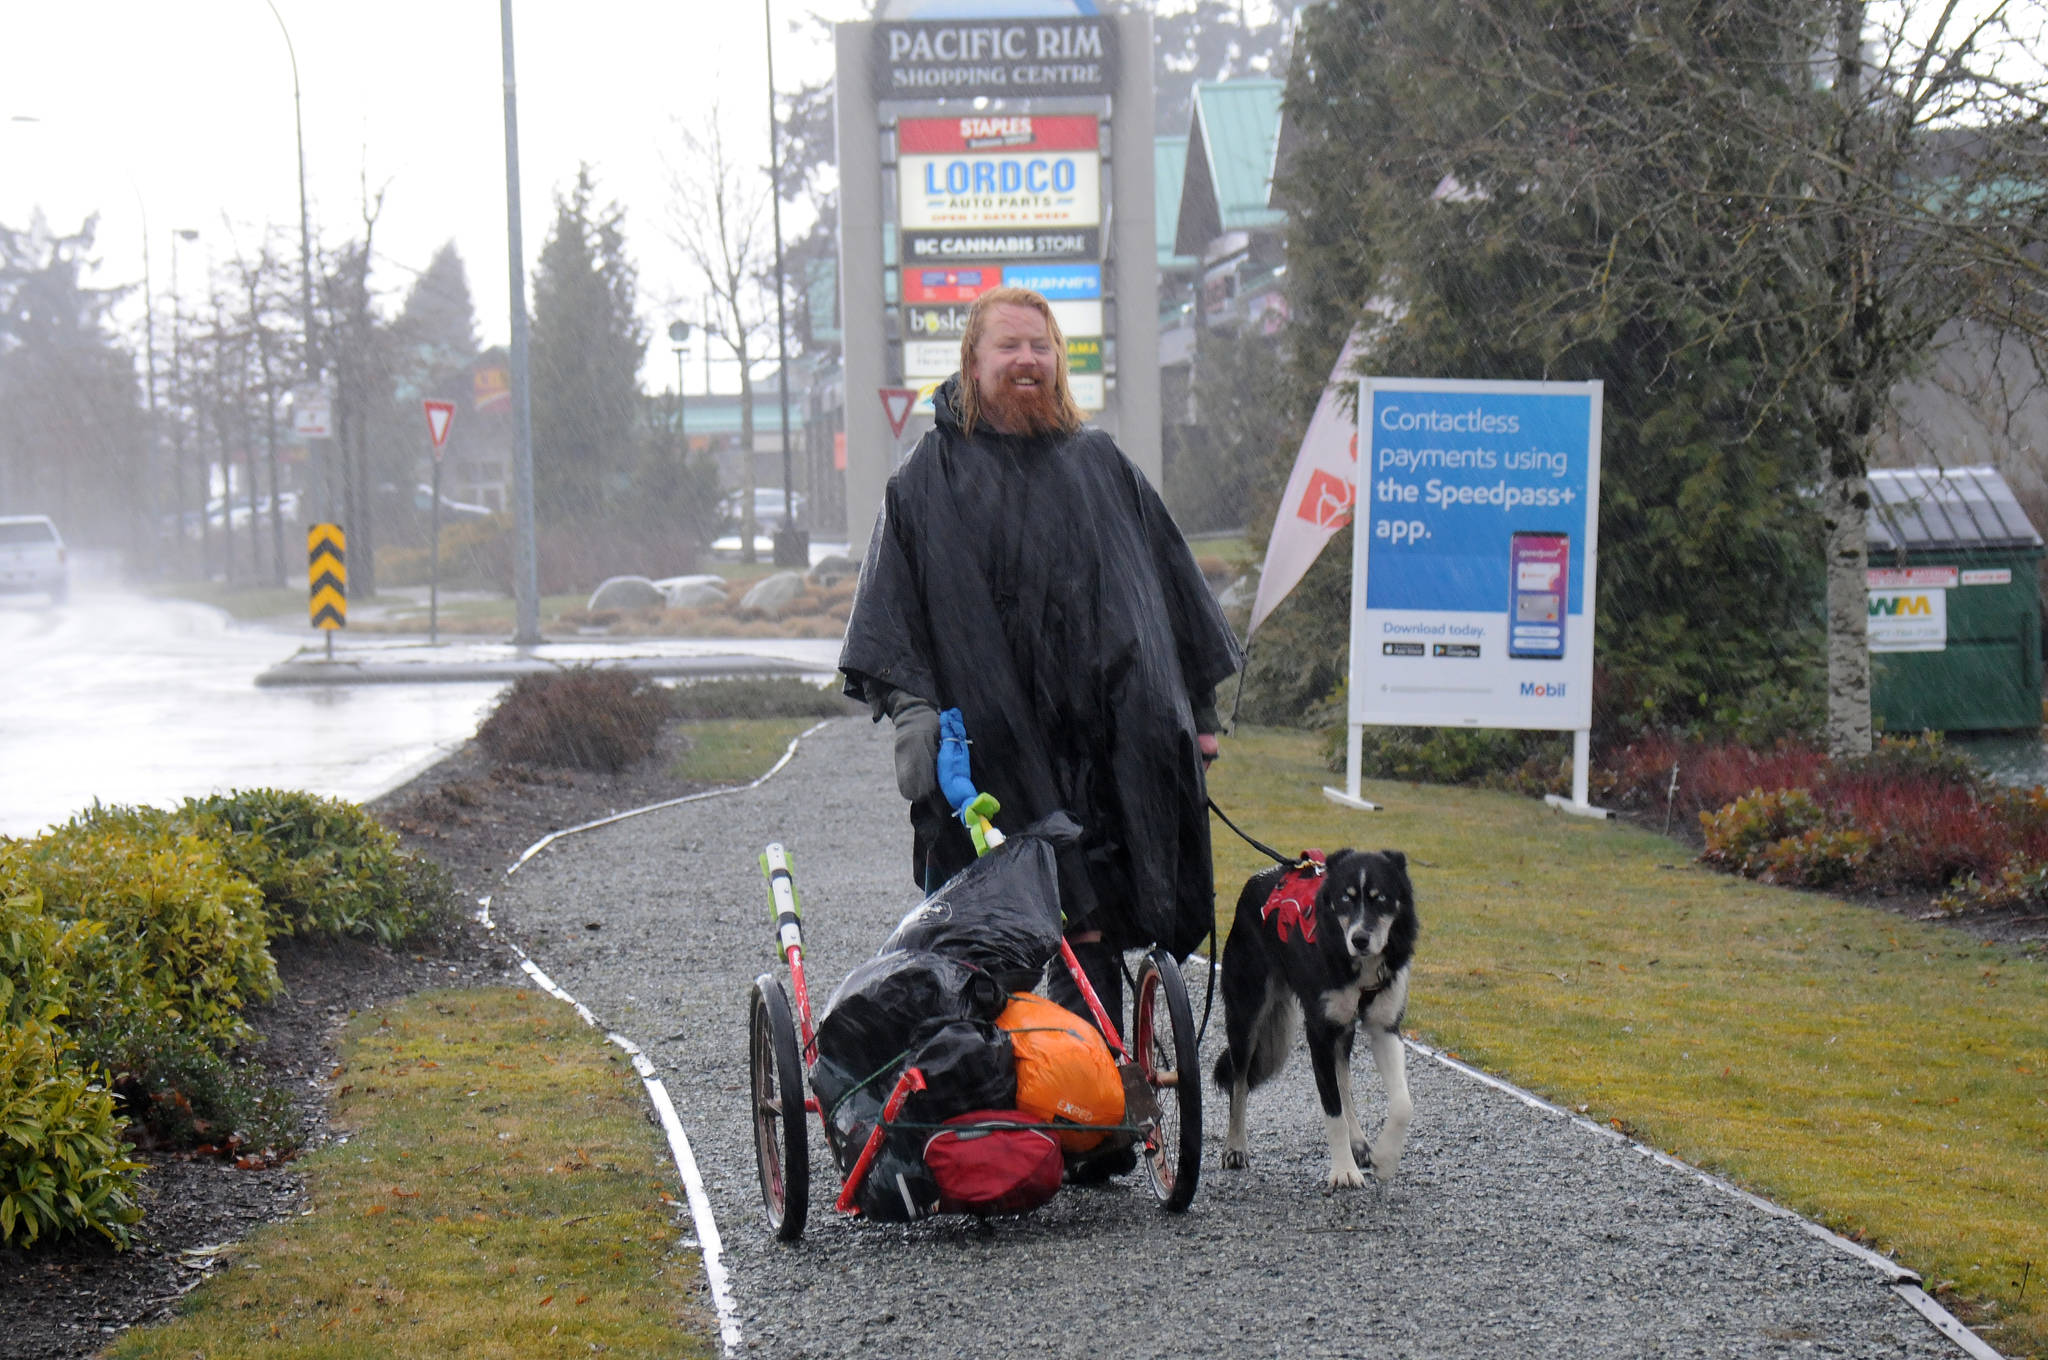 Michael Yellowlees and his dog Luna arrive at Pacific Rim Shopping Centre on Day 5 of their trip across Canada. Yellowlees, from Dunkeld and Birnham in Scotland, is raising money for Trees for Life. (SUSAN QUINN/ Alberni Valley News)